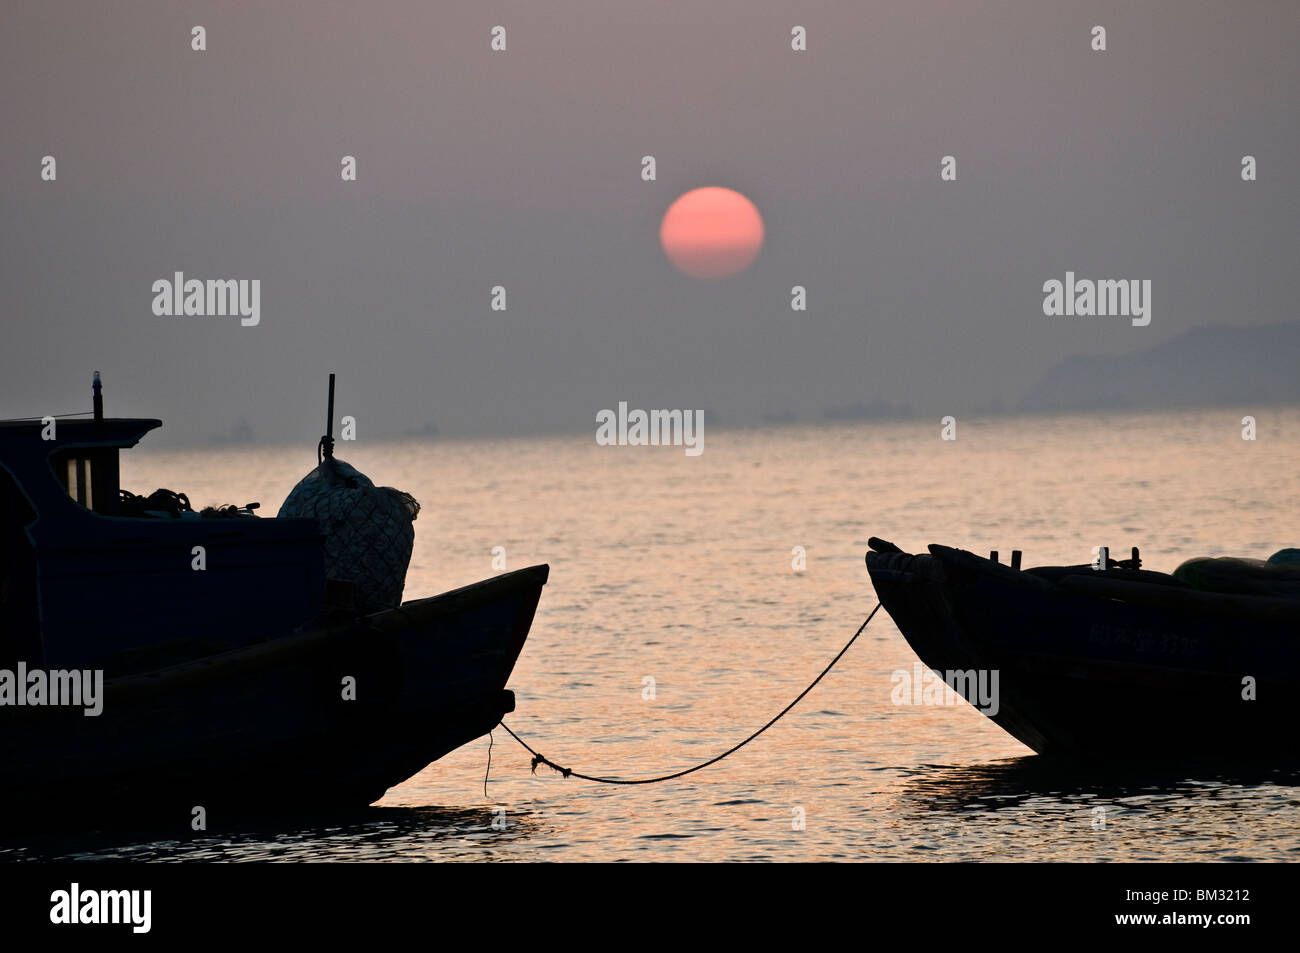 Sunset over the south China sea. - Stock Image